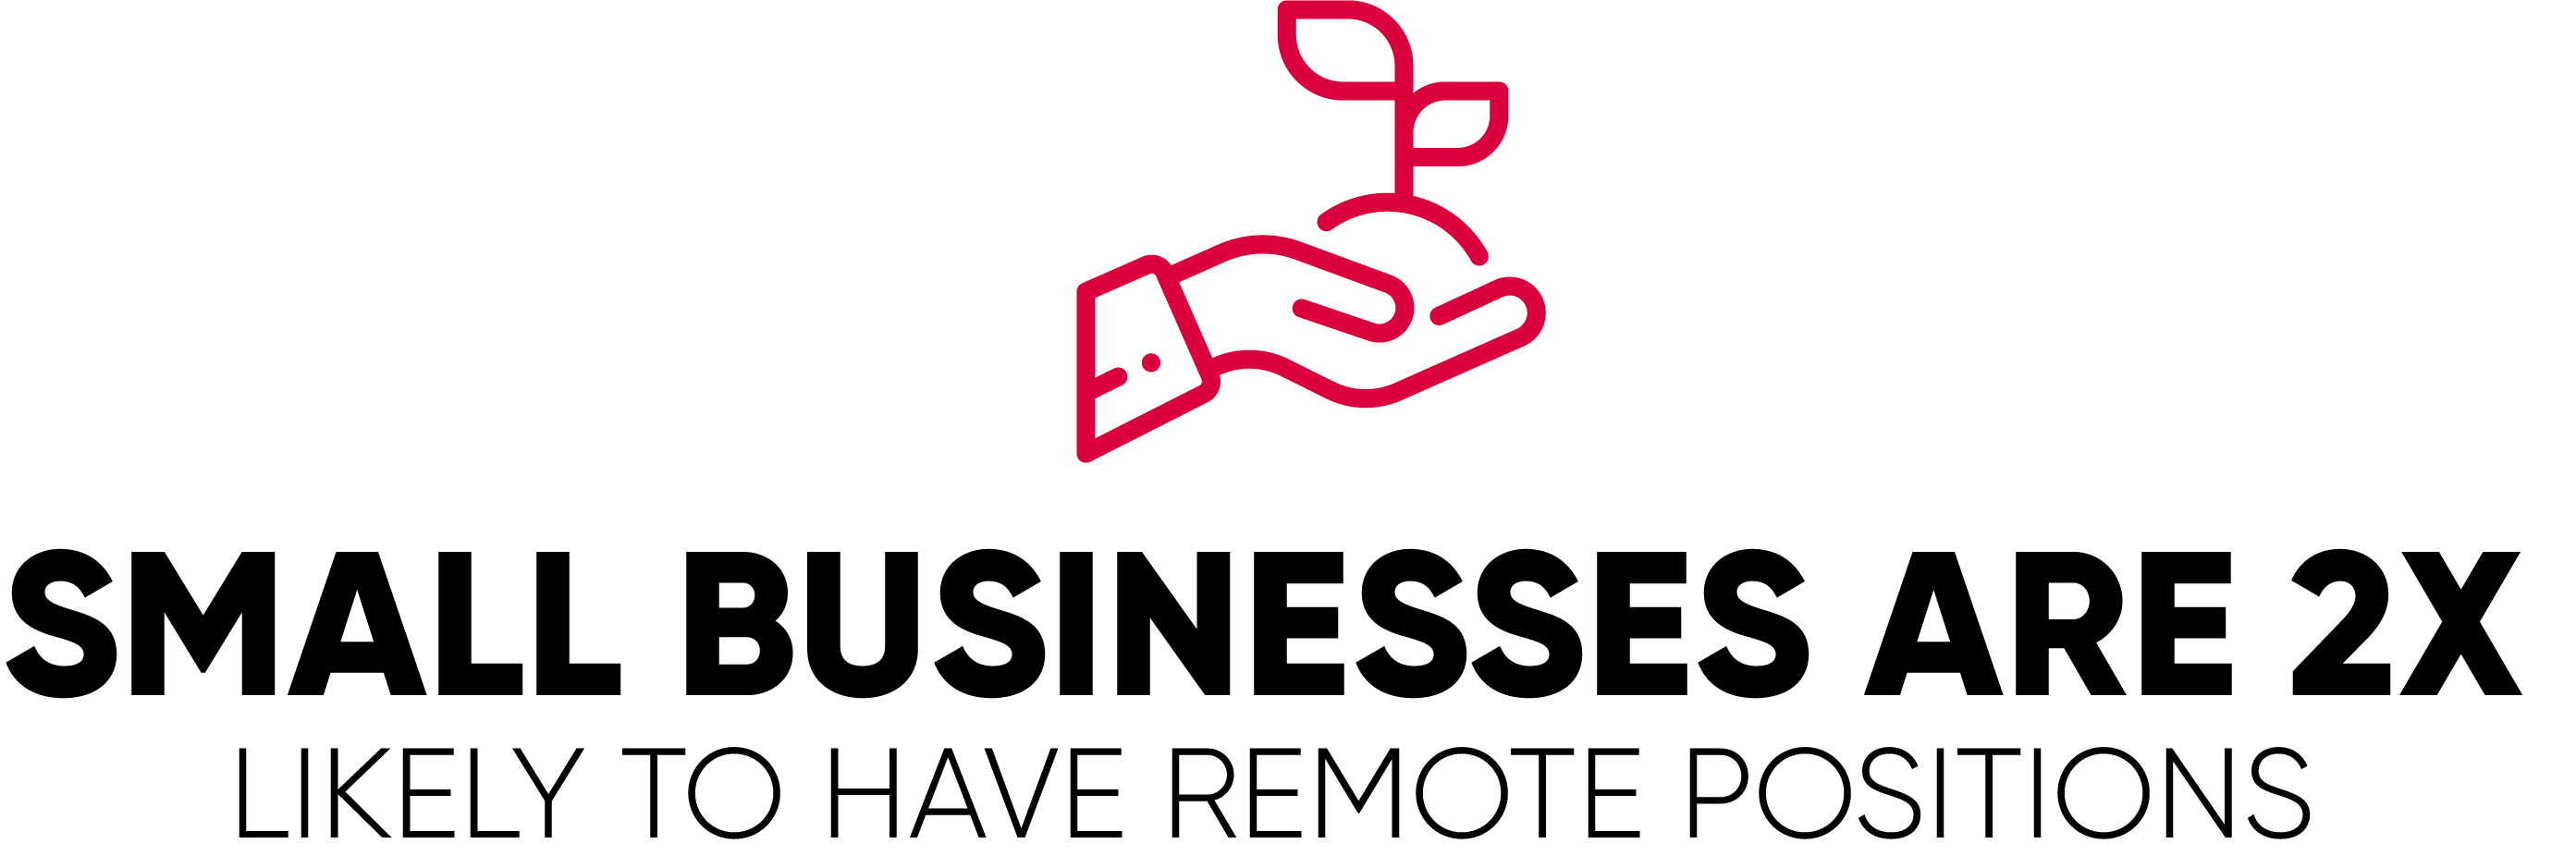 Small Businesses are Twice as Likely to Have Remote Positions